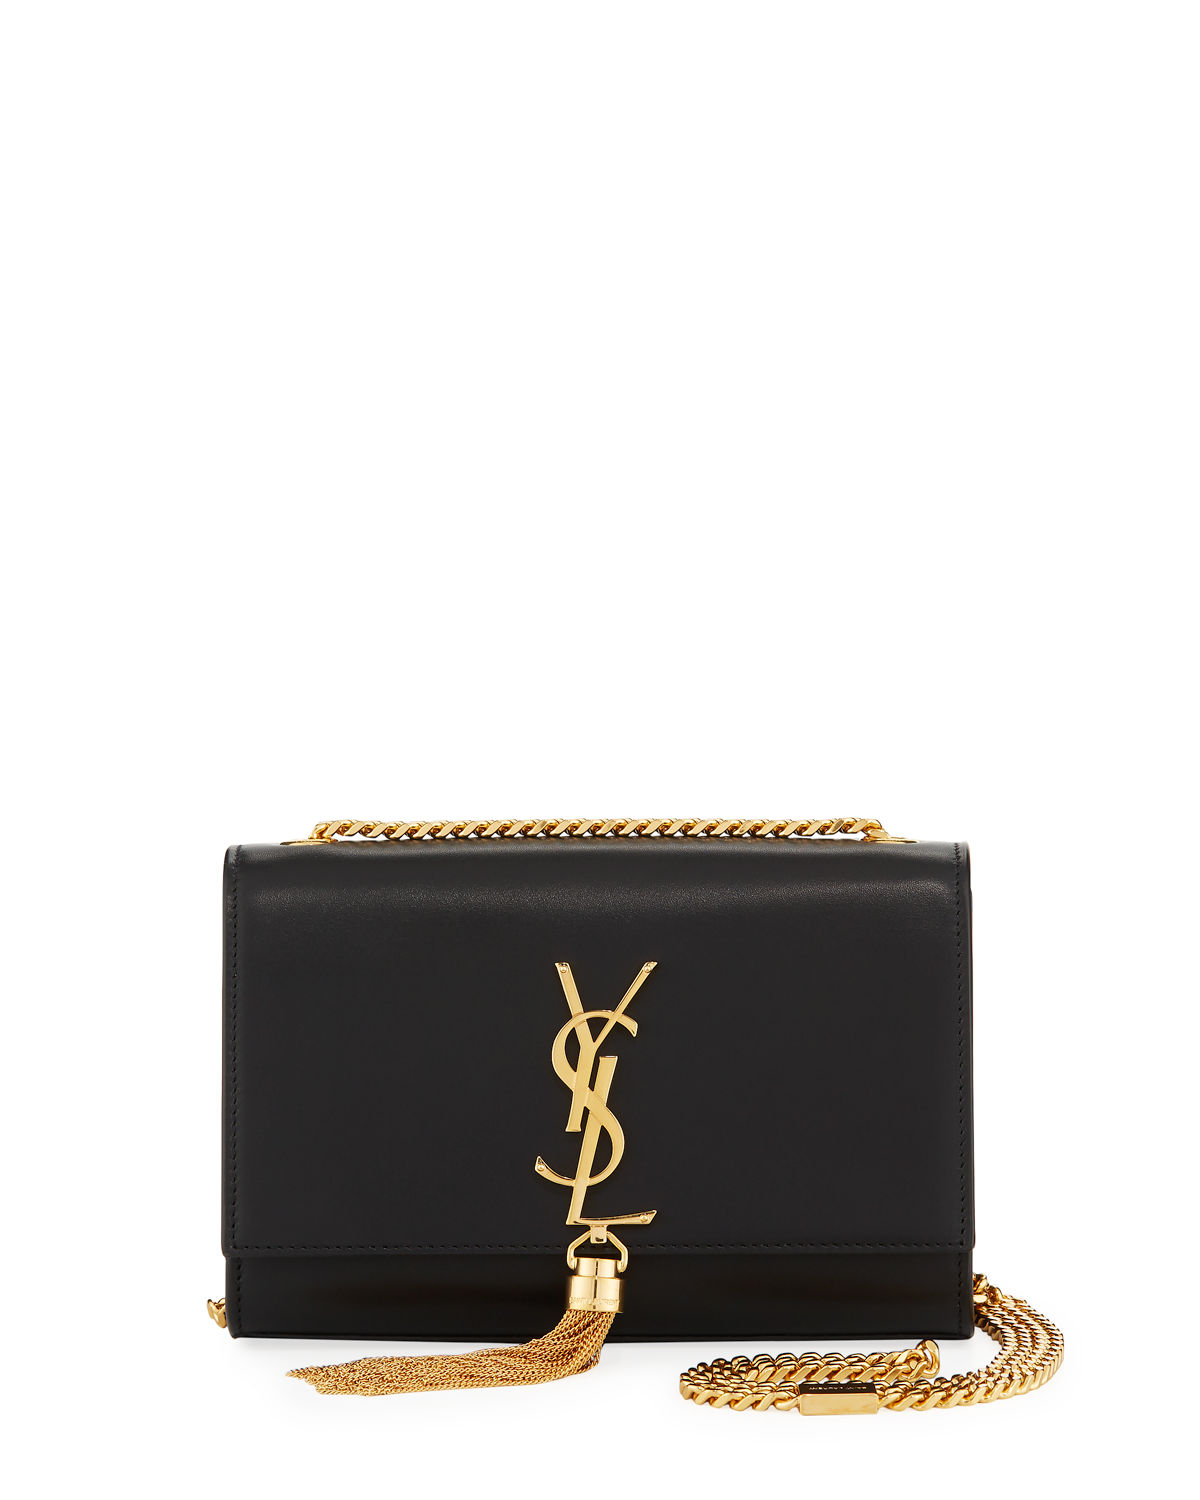 bf86e3ca7c99 Saint LaurentKate Monogram YSL Small Tassel Shoulder Bag with Golden  Hardware